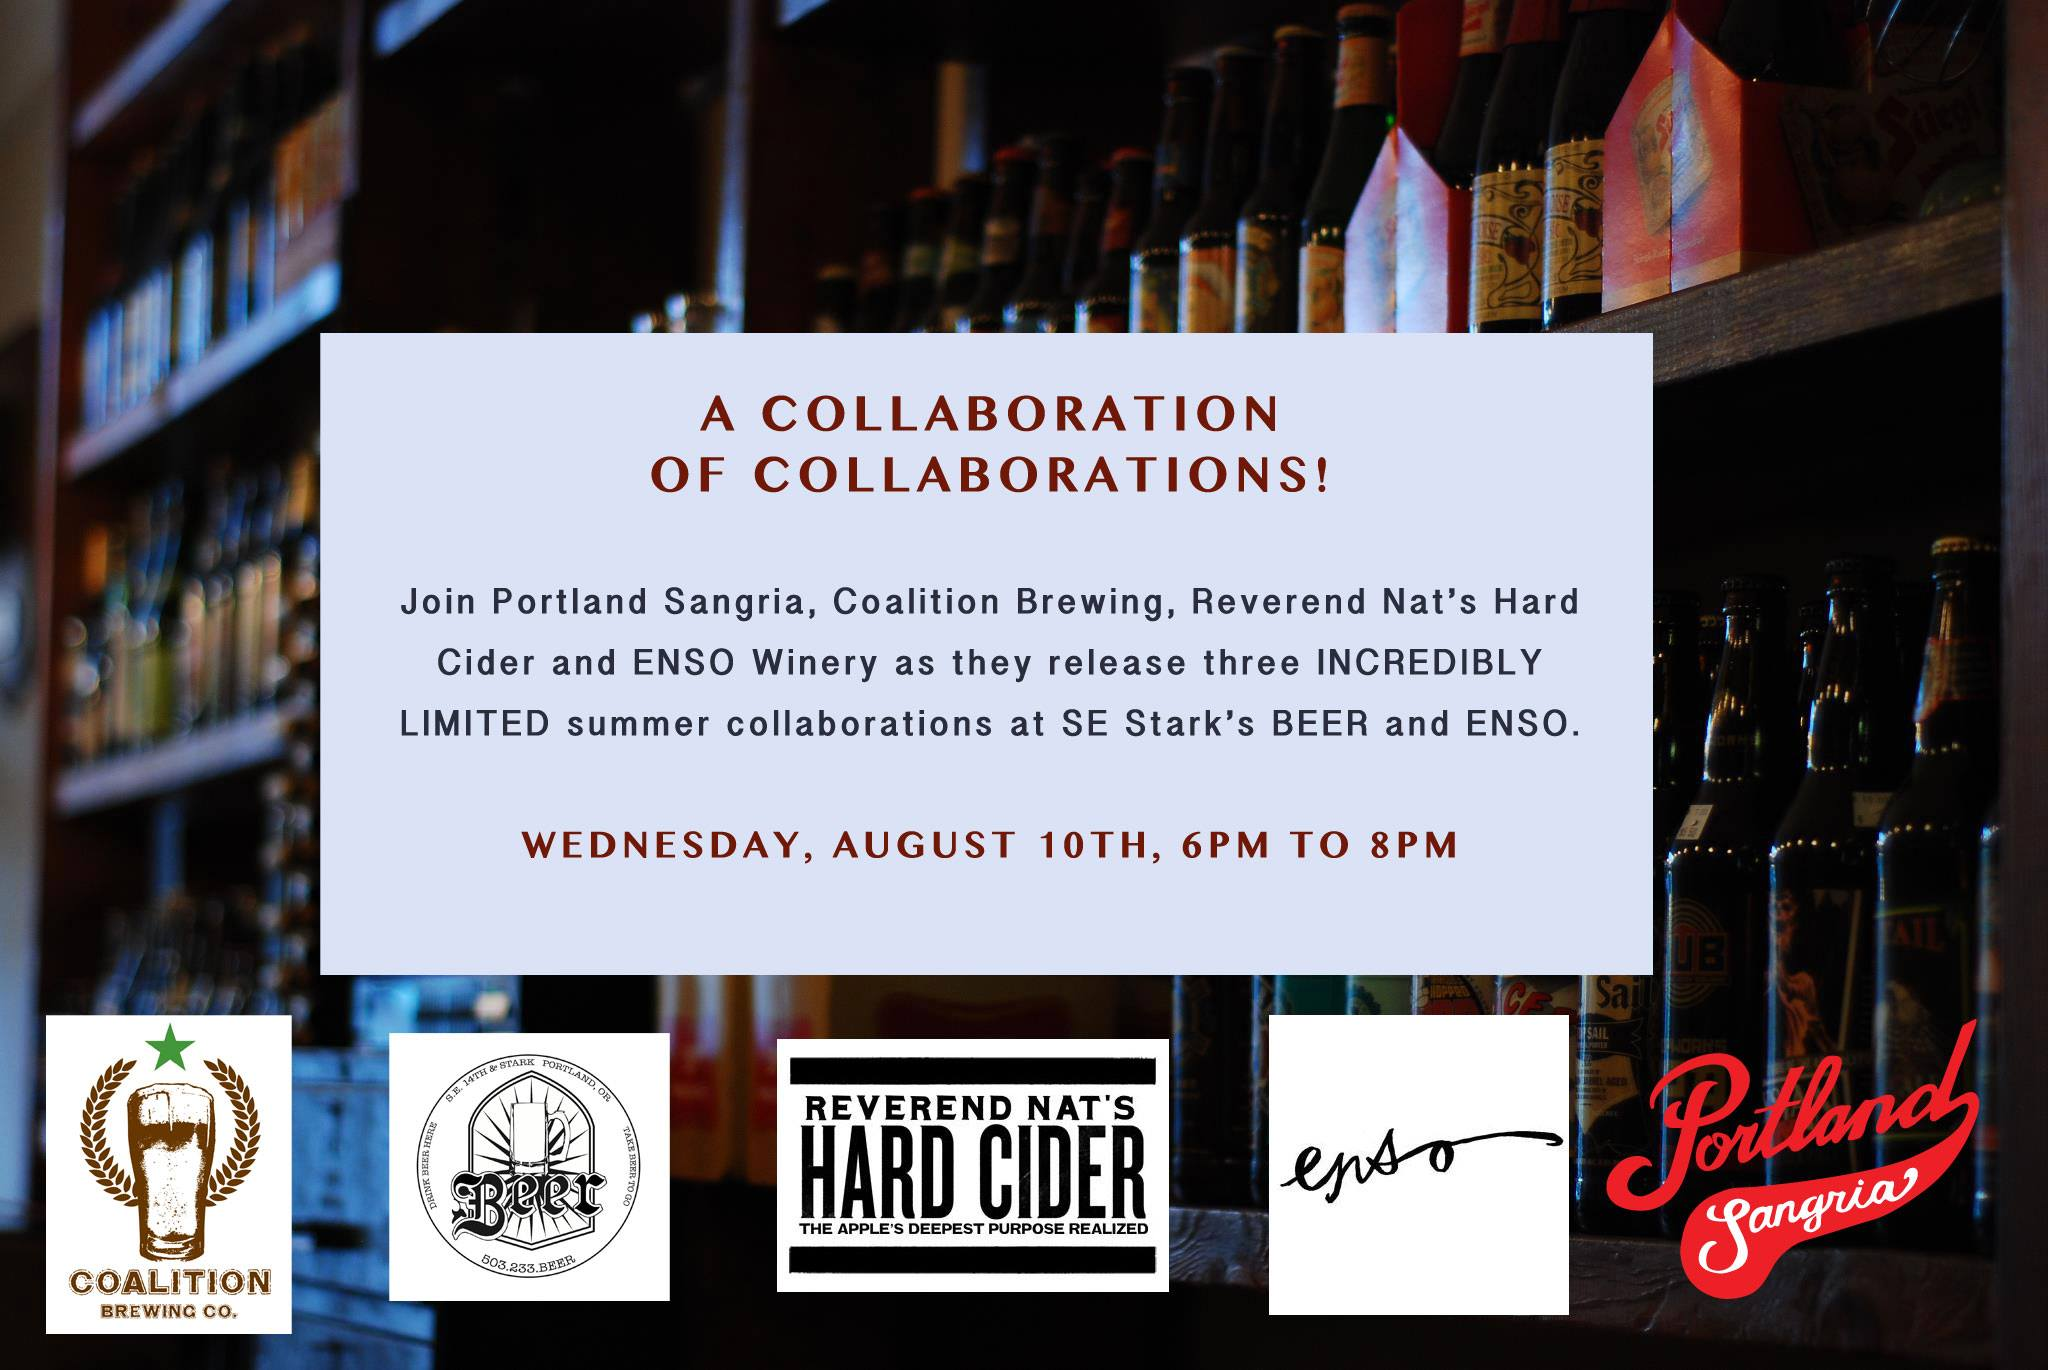 WINE x BEER x SANGRIA x CIDER: A COLLABORATION OF COLLABORATIONS